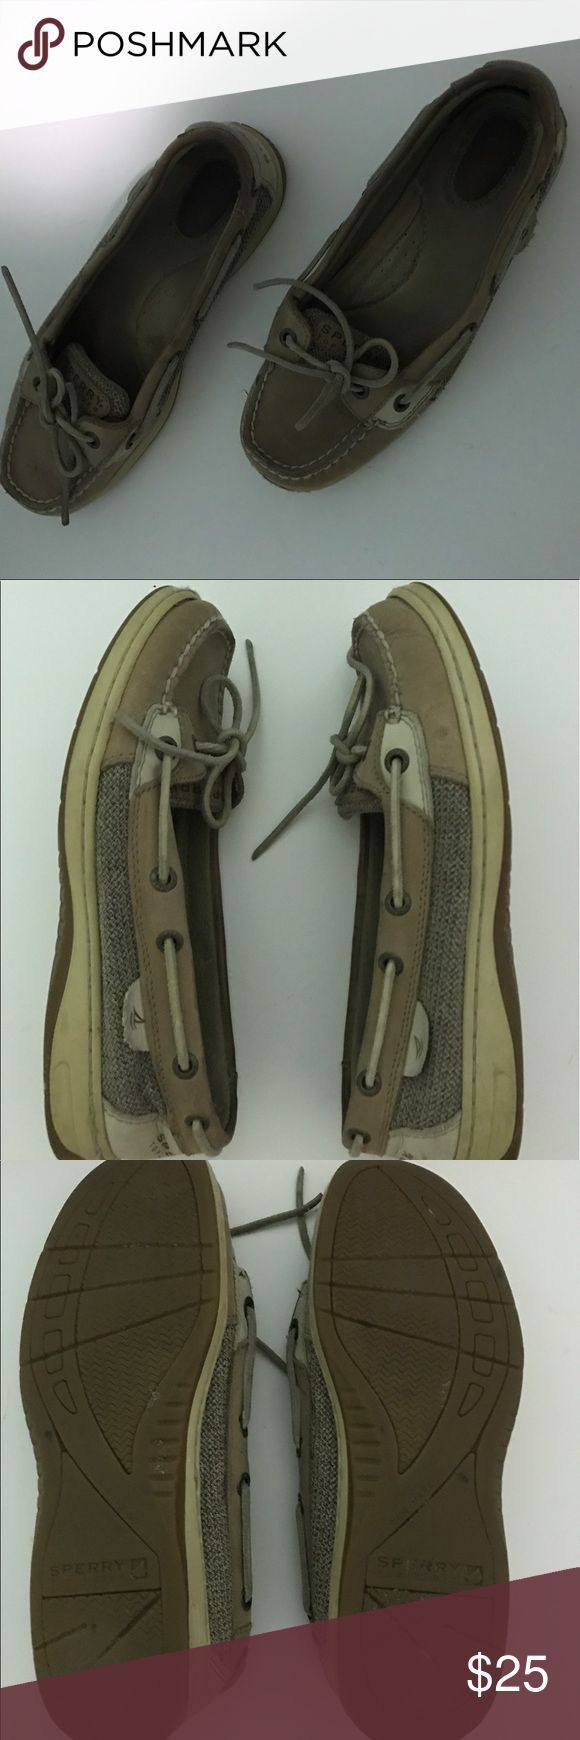 💥PRICE DROP💥Sperry Angelfish Boat Shoes Sperry Angelfish Boat Shoe. Size 7M. The left shoe is starting to tear a bit at the seam in the front of the shoe. The right shoe has a tiny stain on the front and on the side. There are also little indentations/fold marks on the back of the shoe but aren't noticeable when worn. Sperry Top-Sider Shoes Flats & Loafers